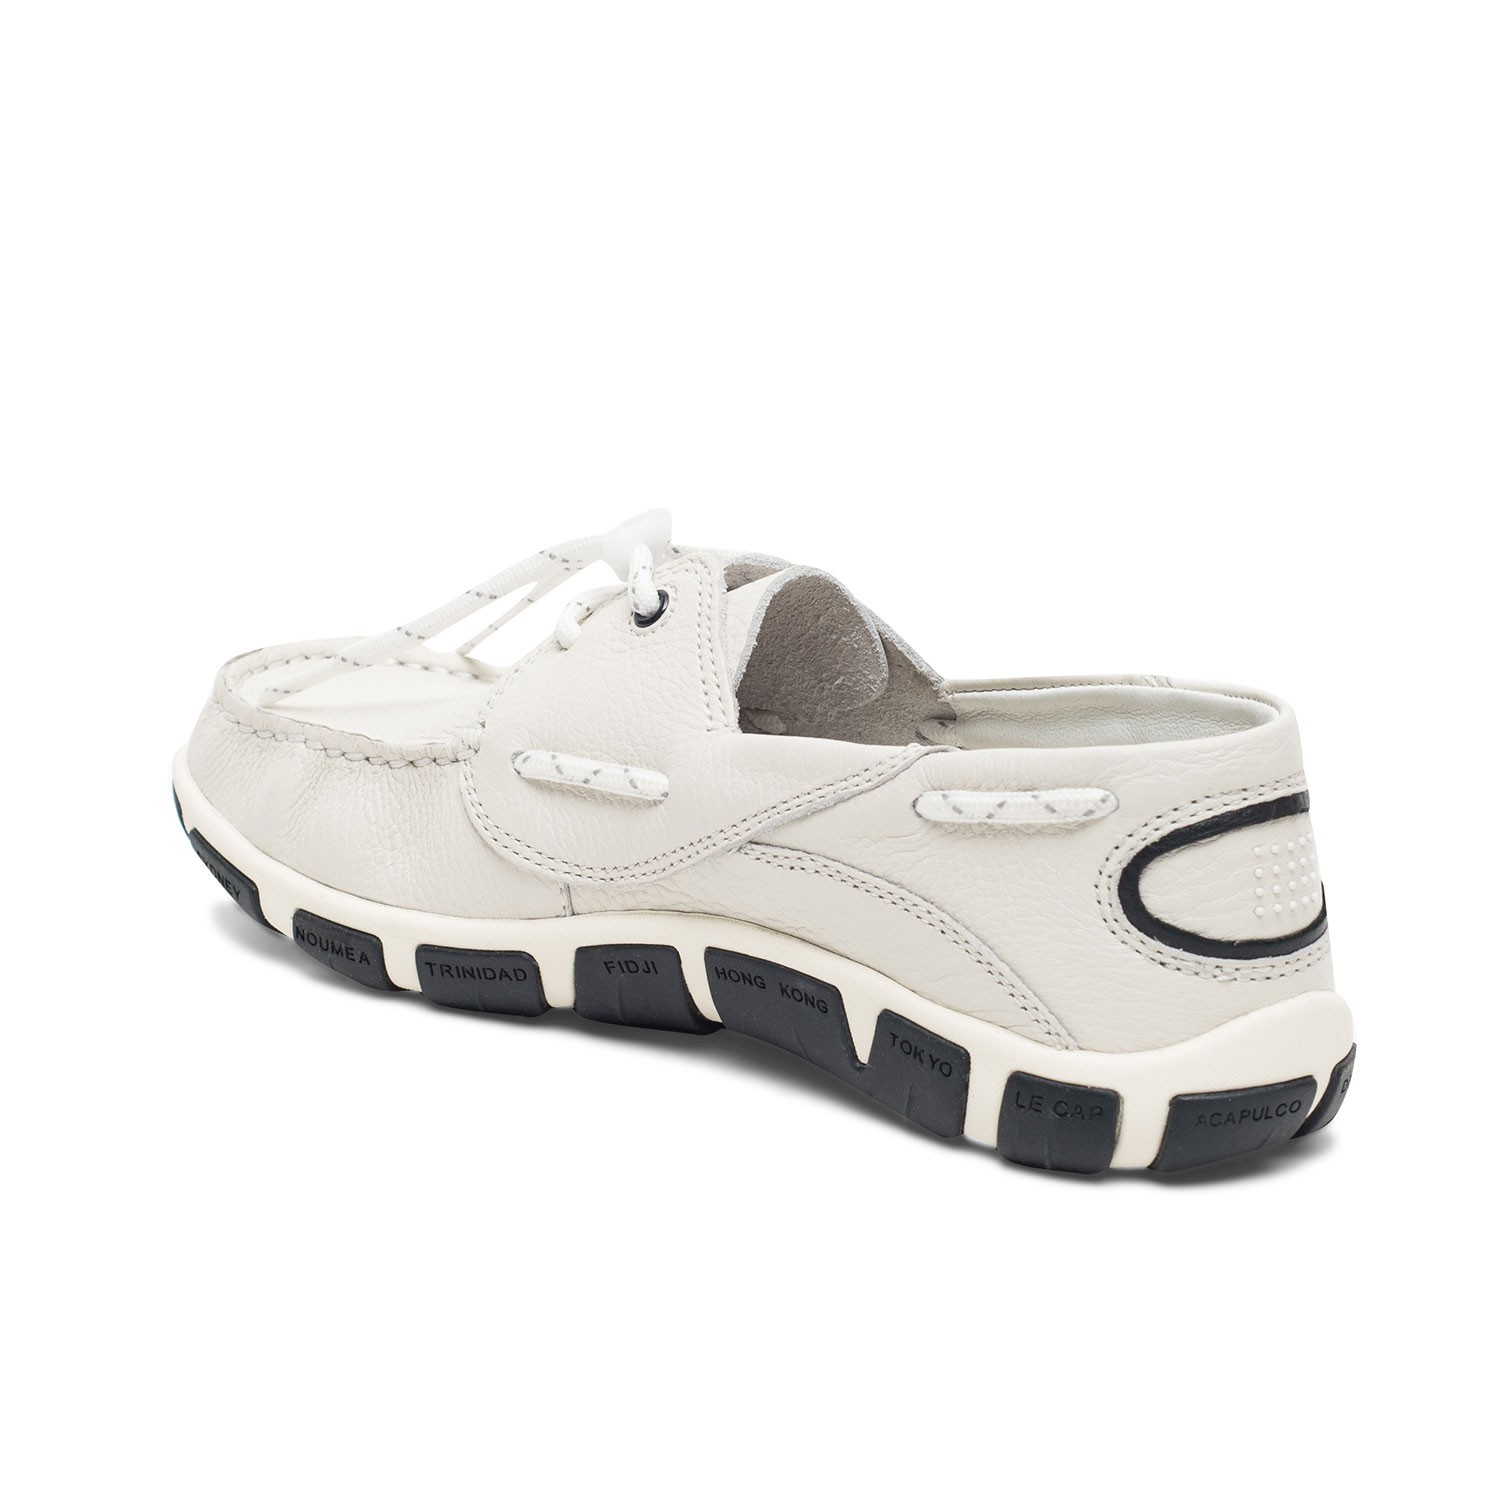 Montante 1990 Chaussures Blanche Cuir Adidas yY7bf6g